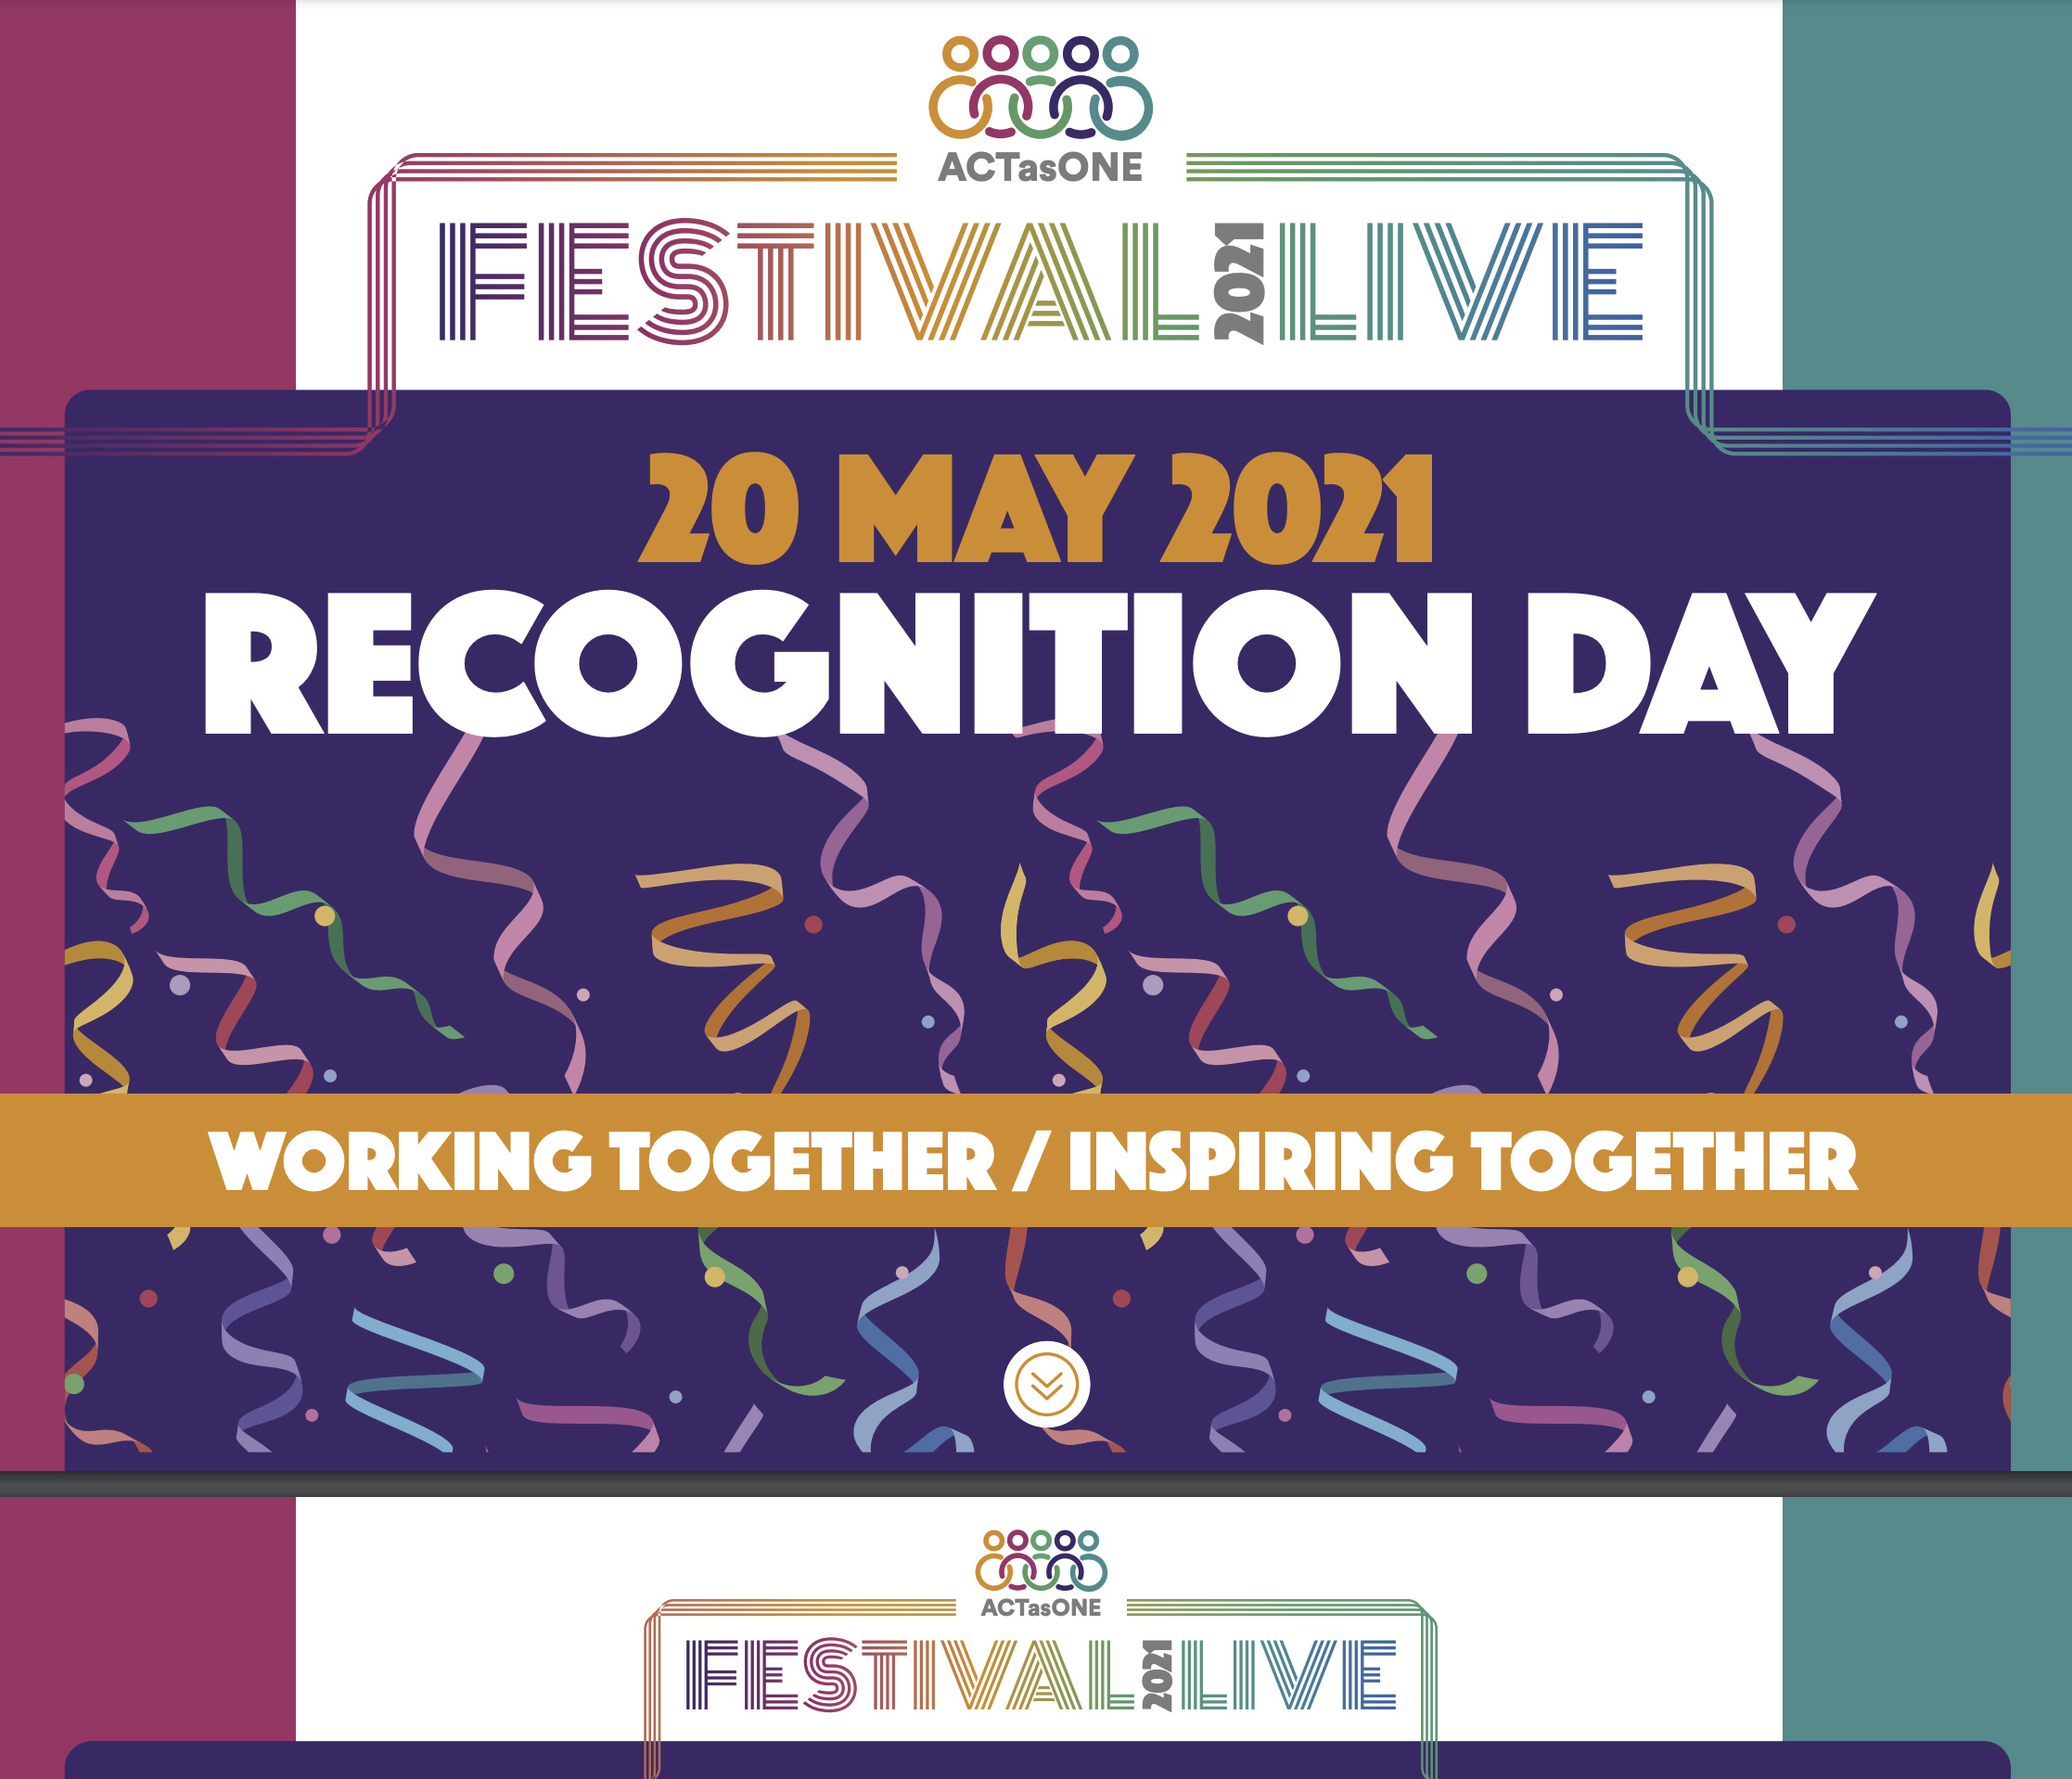 Act as One Festival Recognition day